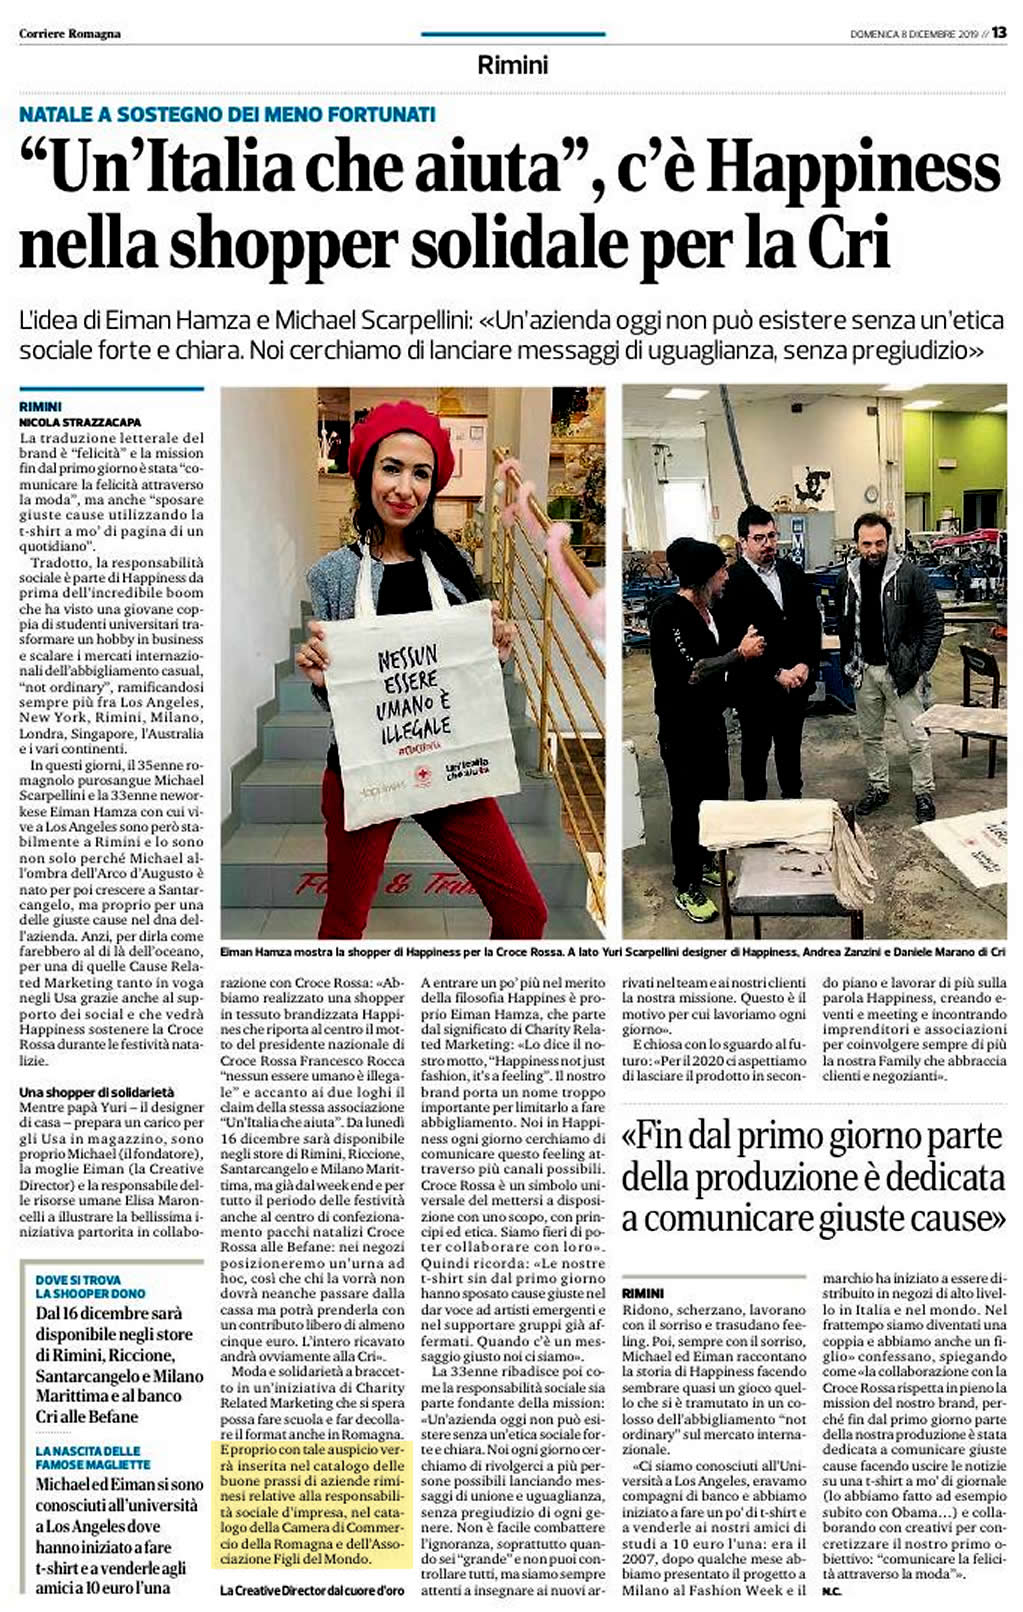 Happiness for Croce rossa charity related marketing